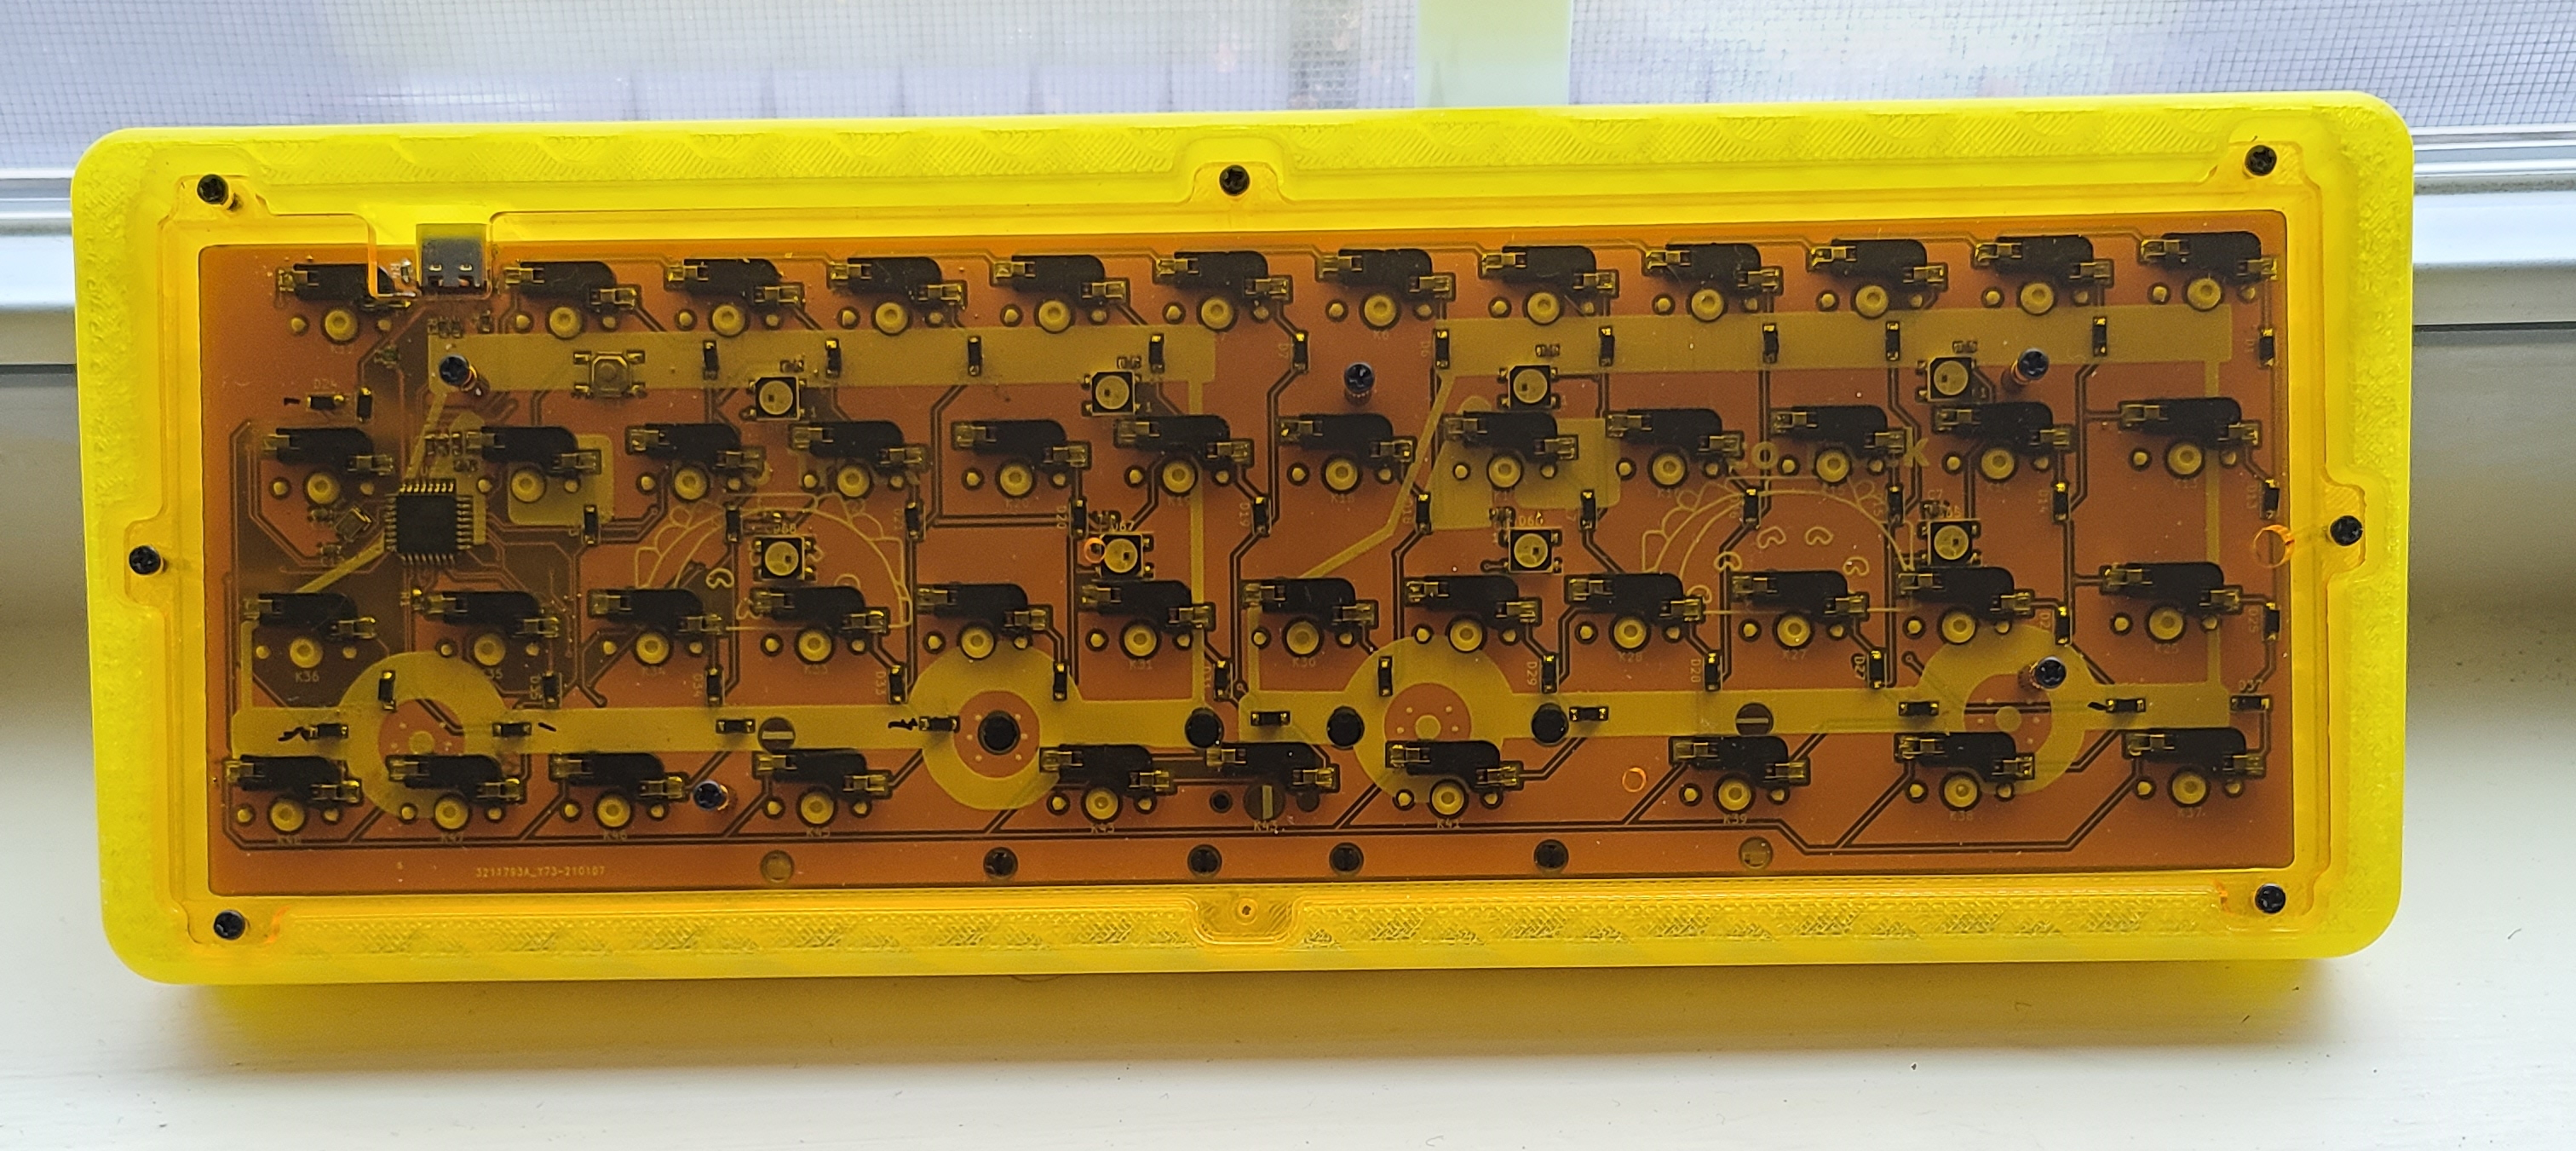 Underside of the PCB installed in a case. The hotswap sockets and misaligned USB port can be seen through the clear acrylic bottom.